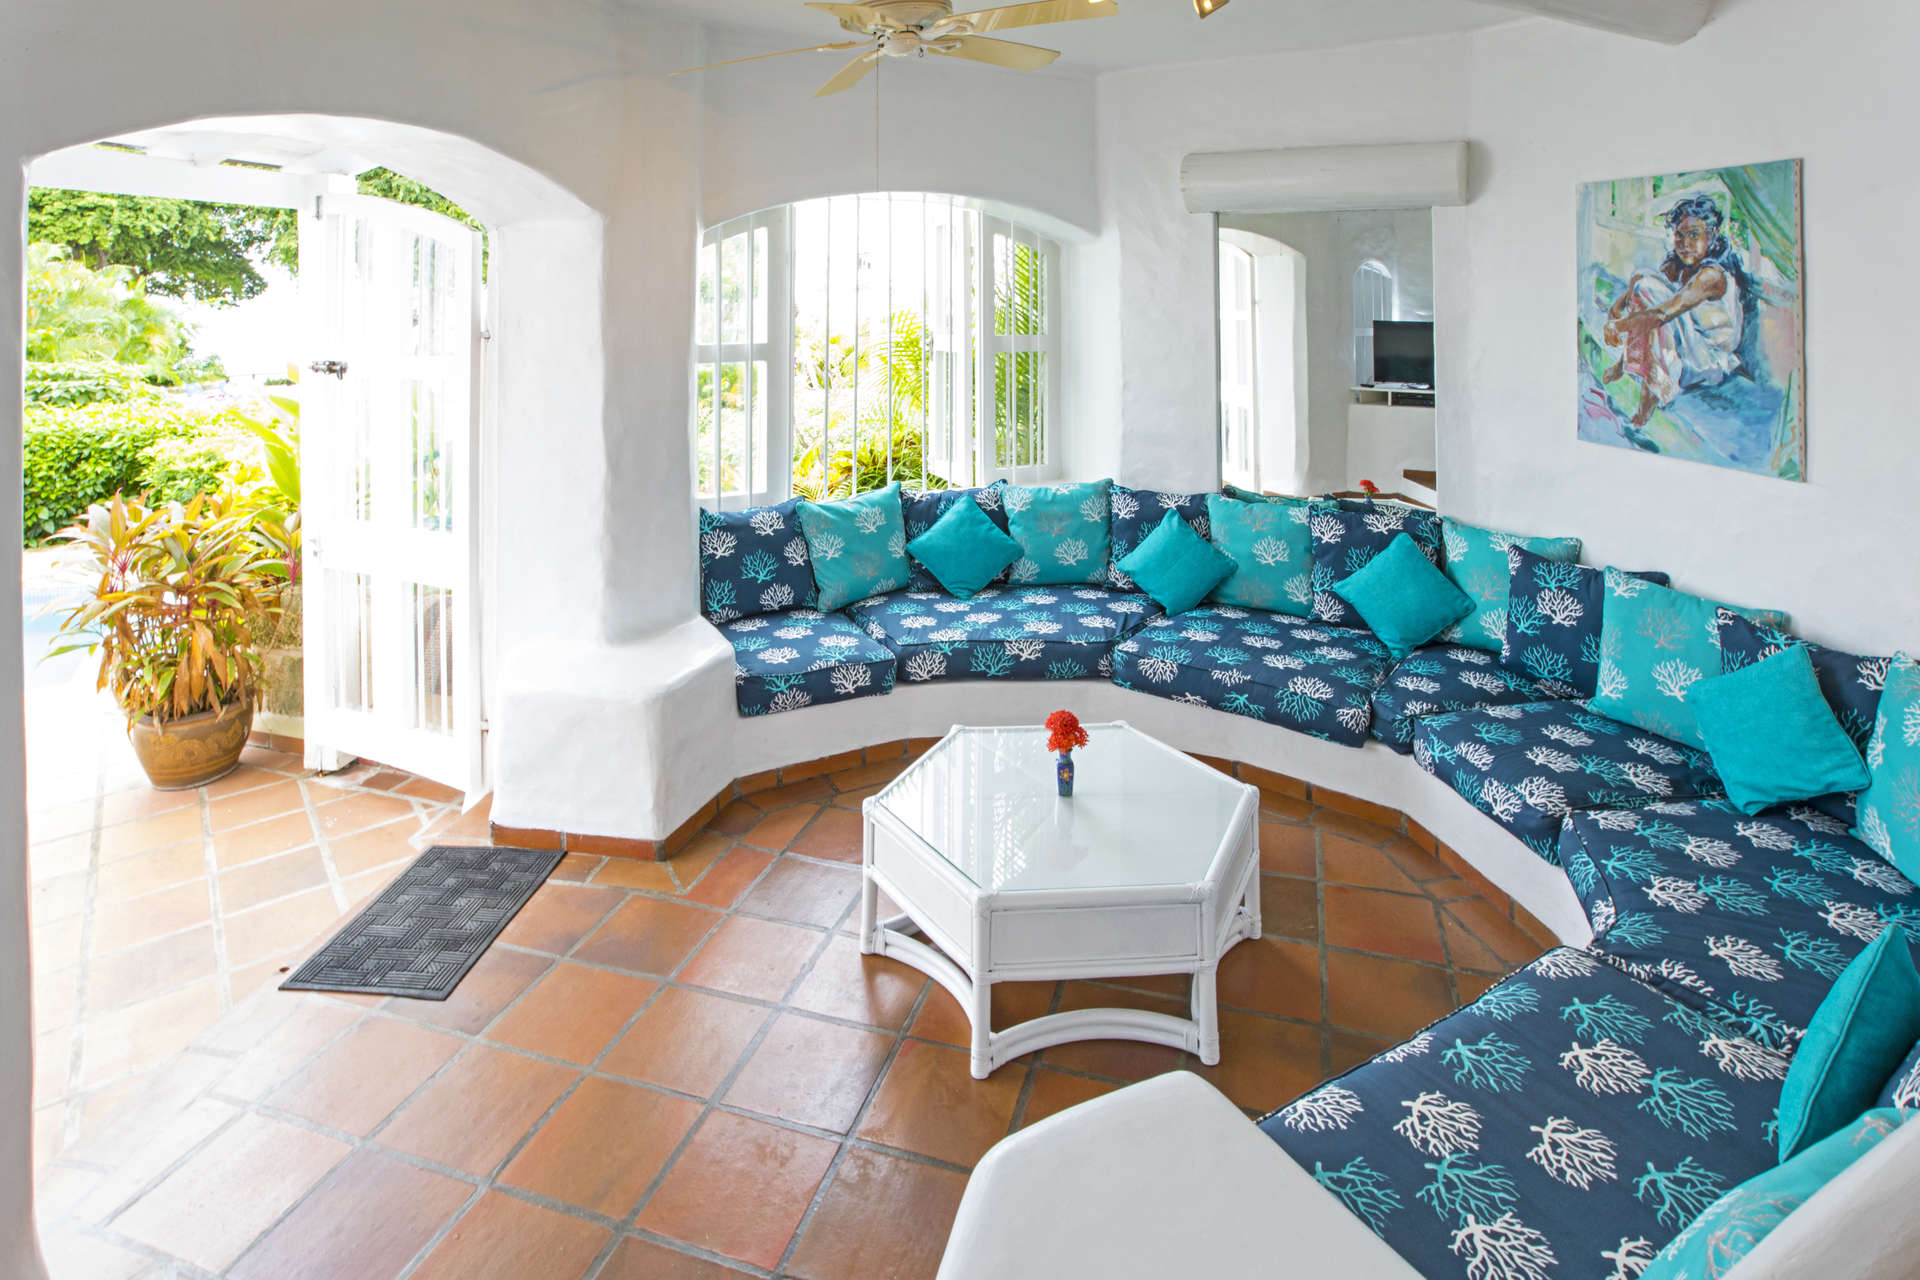 Luxury villa rentals caribbean - Barbados - St james - The garden - Merlin Bay 6 | Firefly - Image 1/10